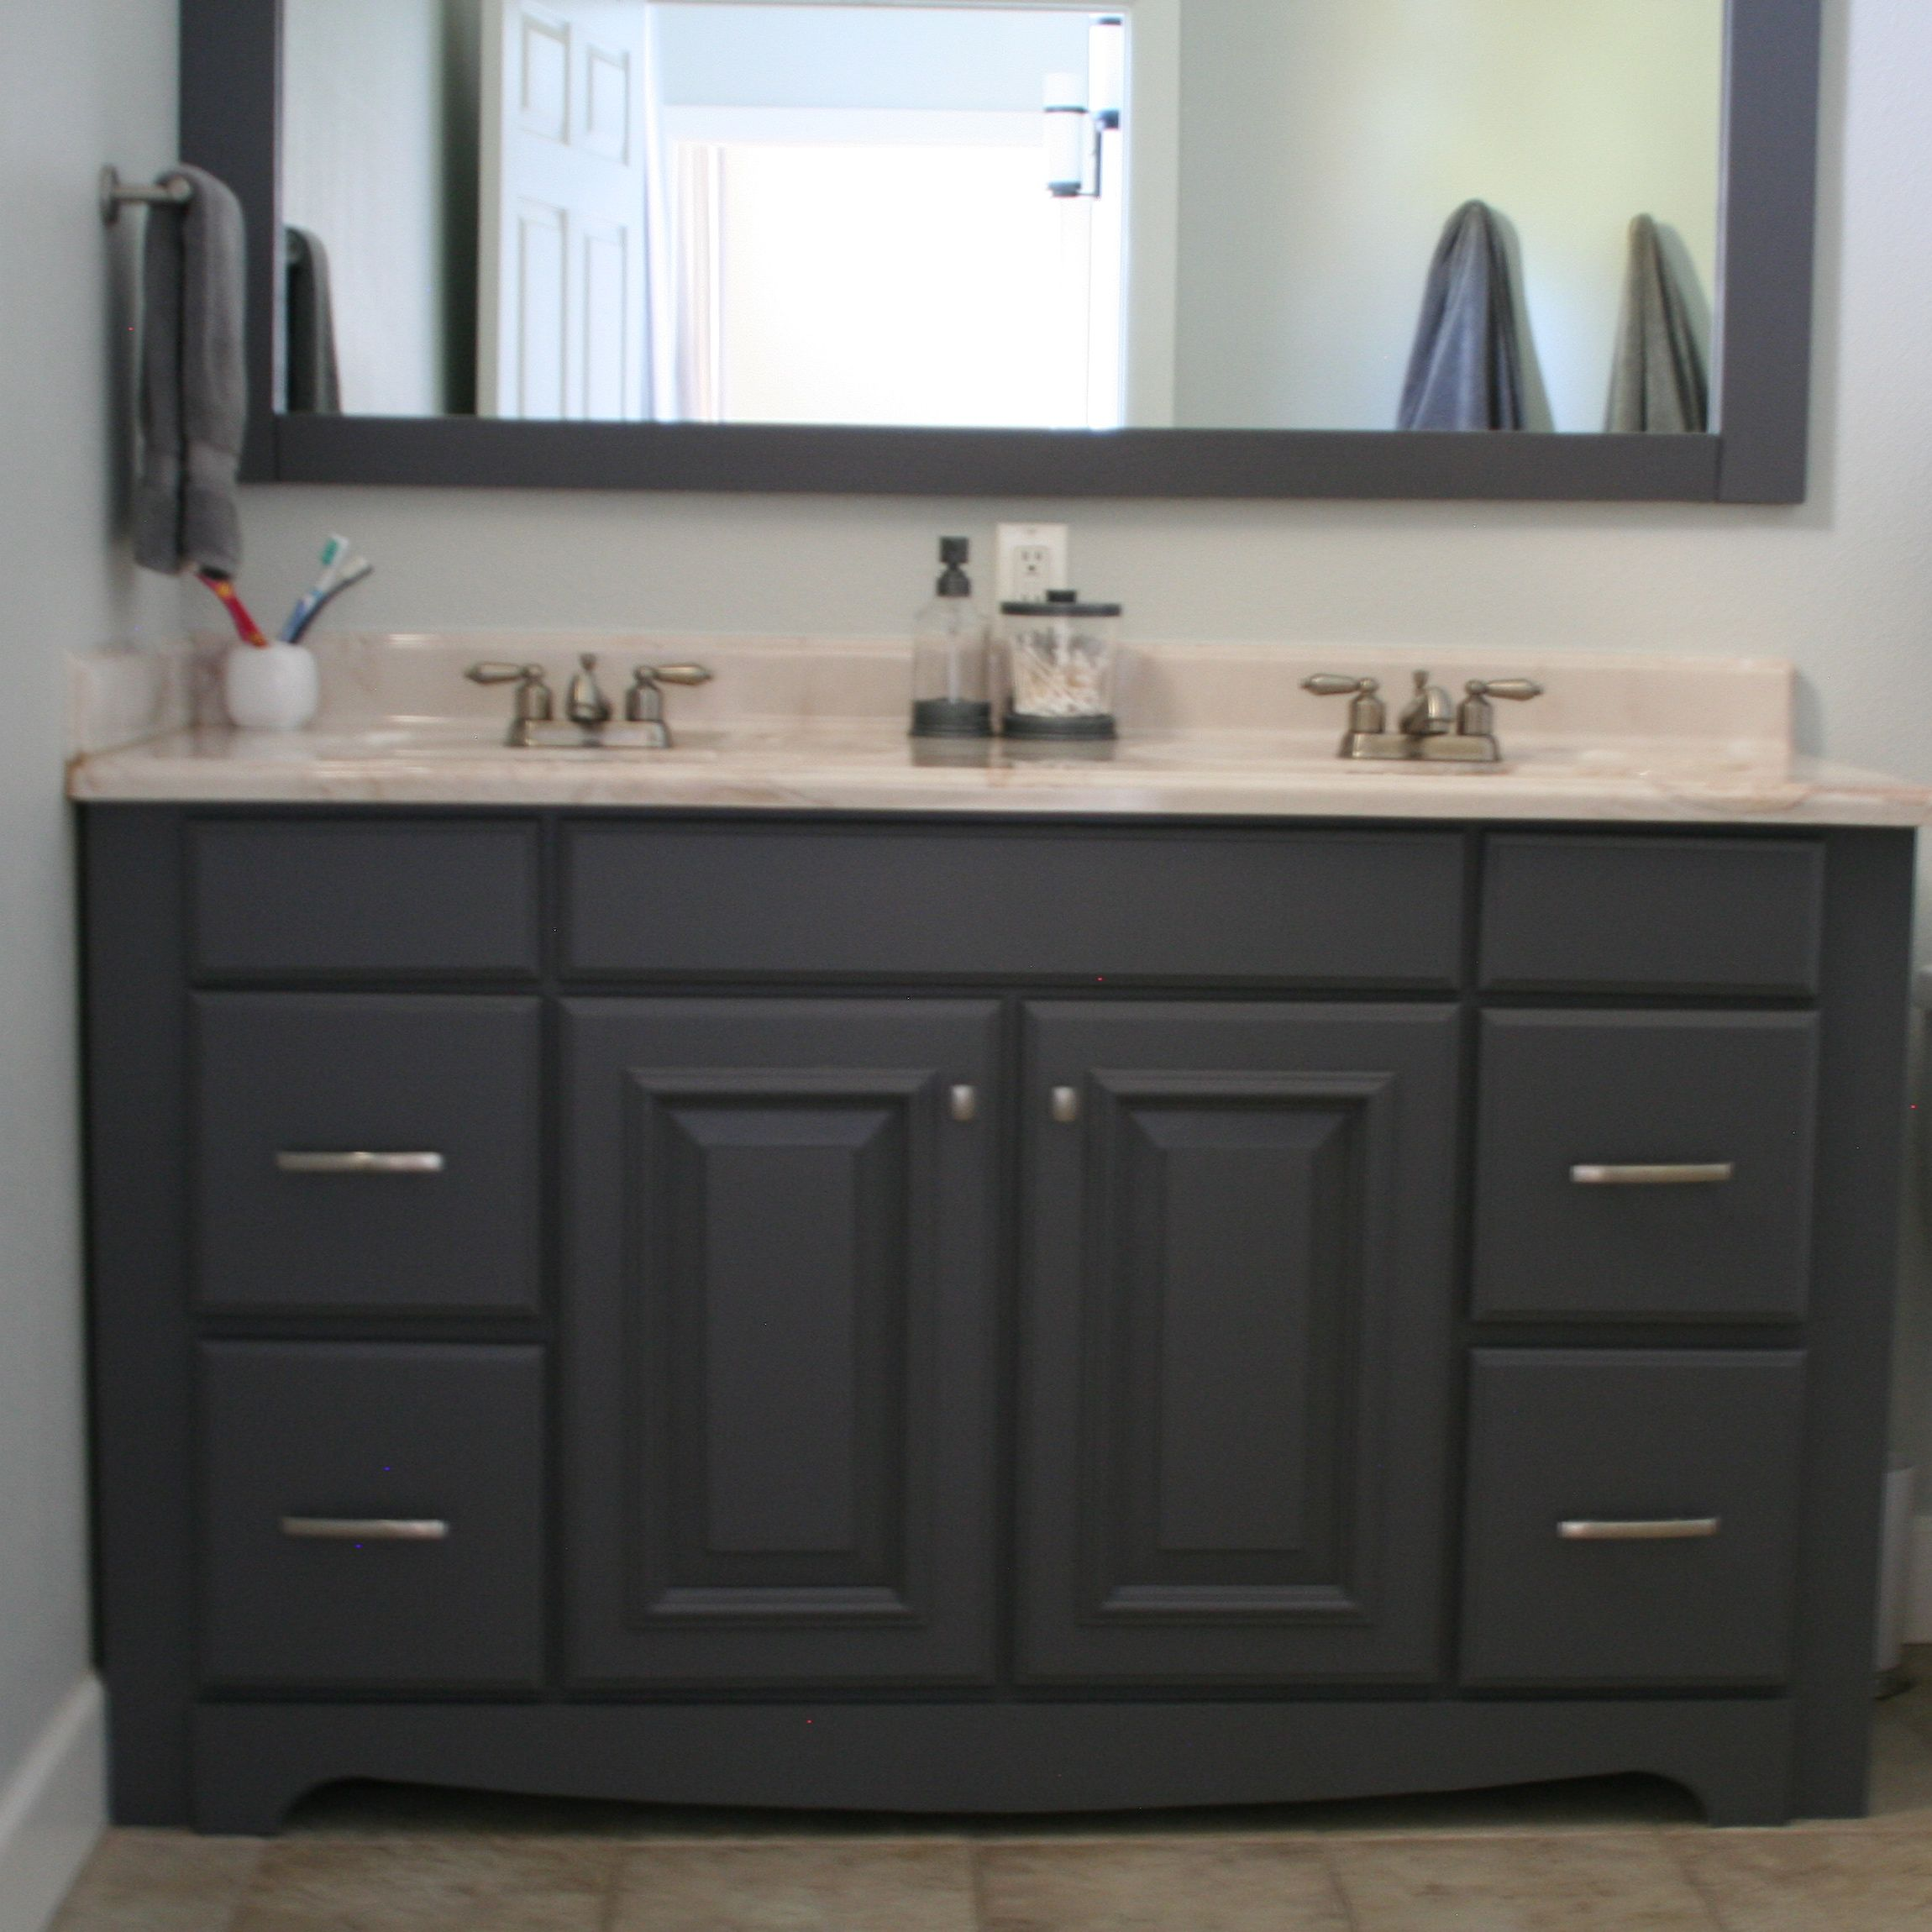 Painting bathroom vanity gray google search brian 39 s master bedroom pinterest painting Master bedroom with bathroom vanity